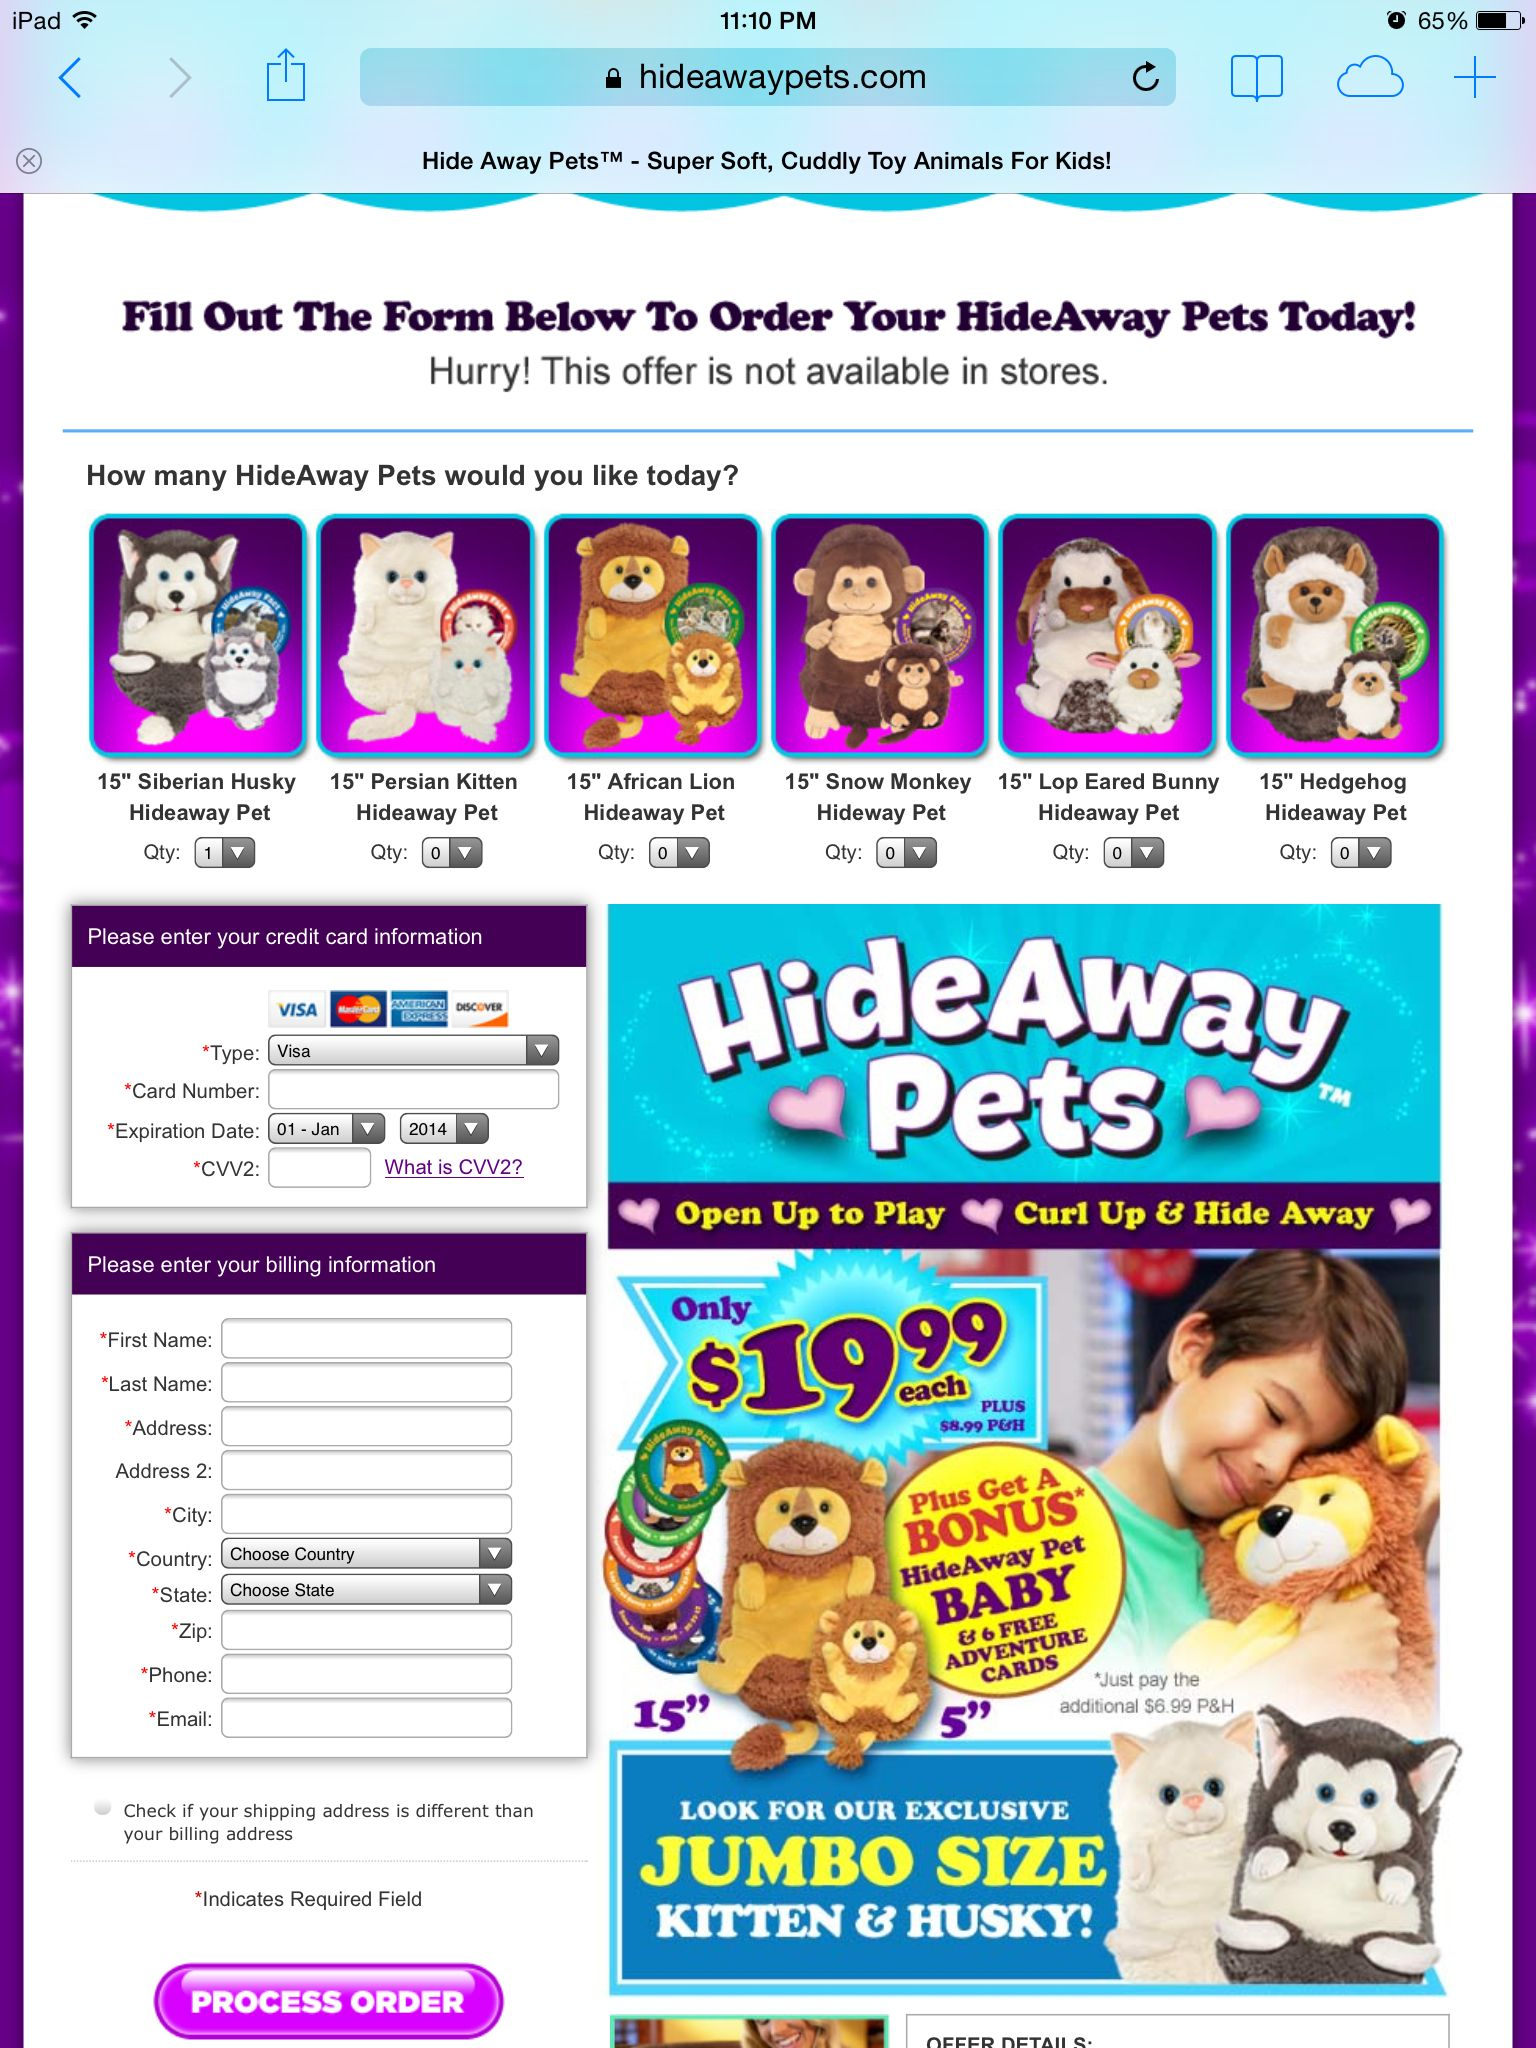 Hideawaypets Com Siberian Husky Is One Of The Only Jumbo Sizes